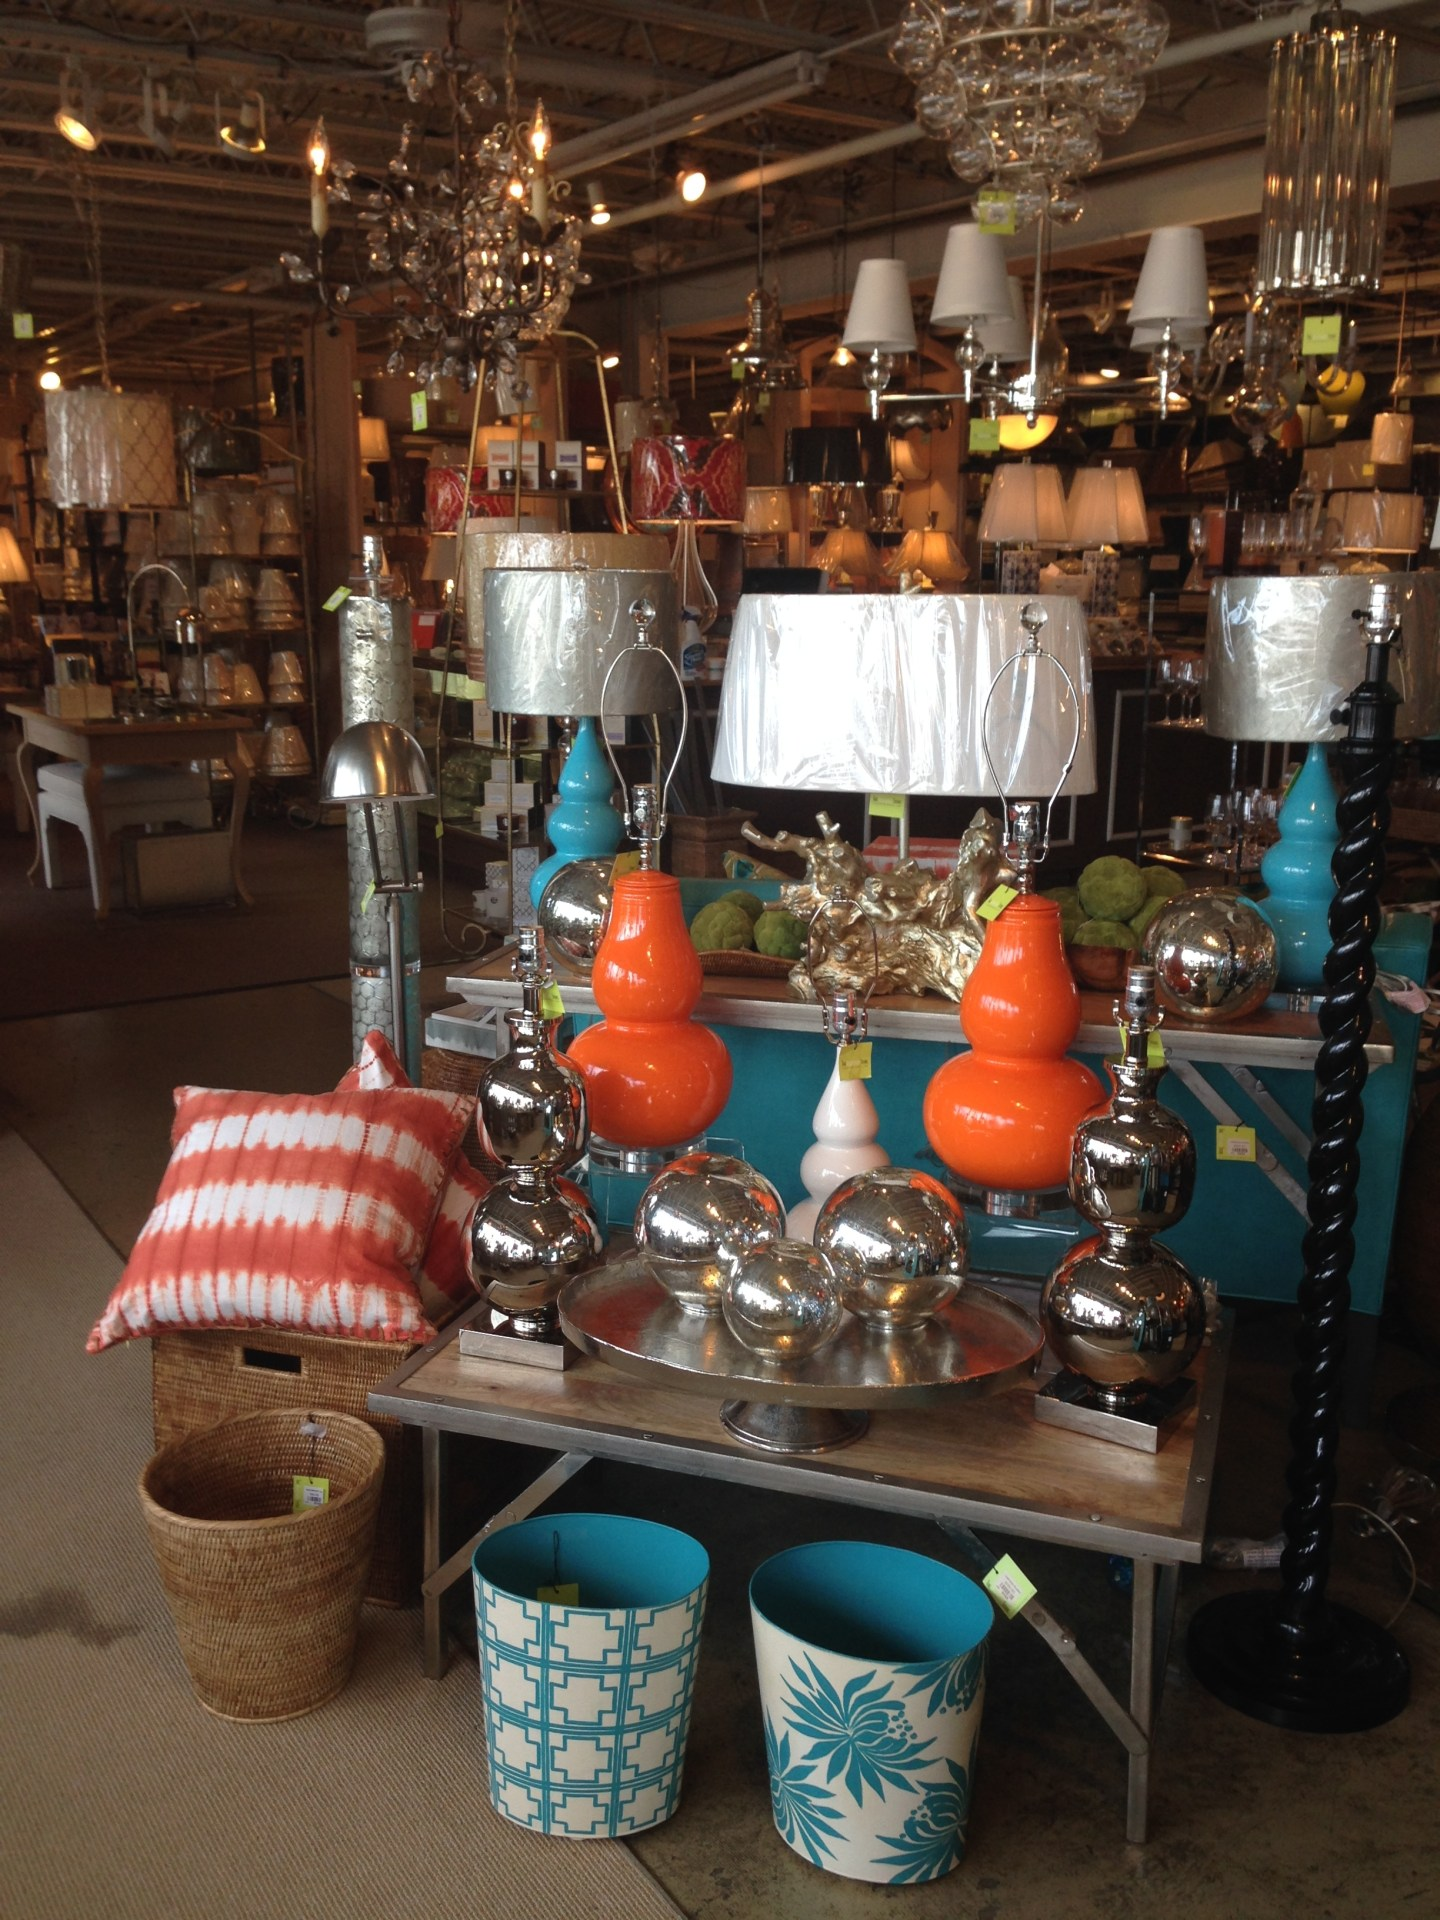 Chelsea Piers + Antiquing